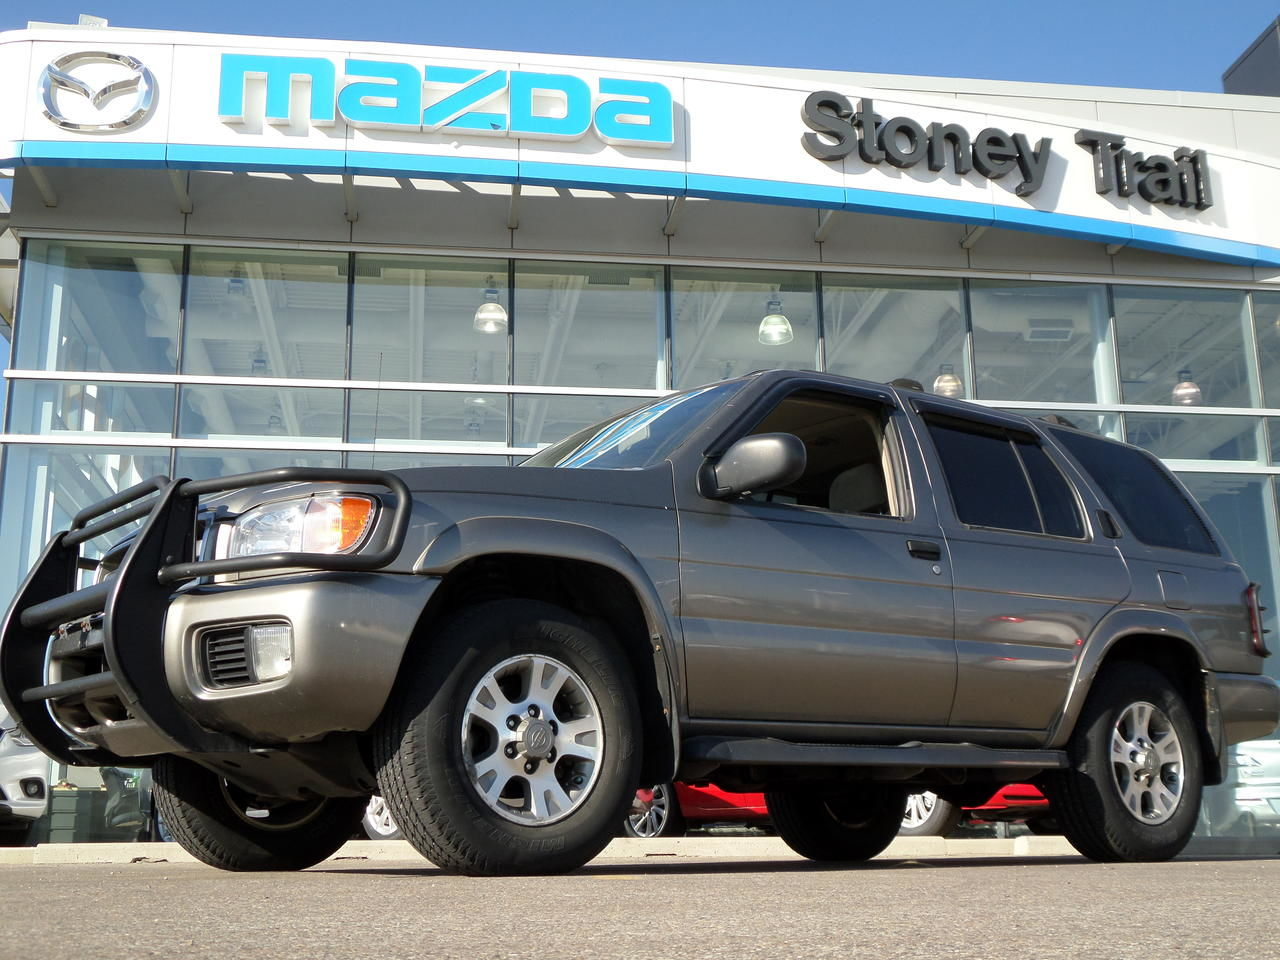 Mazda Certified Pre Owned >> 2004 Nissan Pathfinder Chinook for sale in Calgary | Stoney Trail Mazda